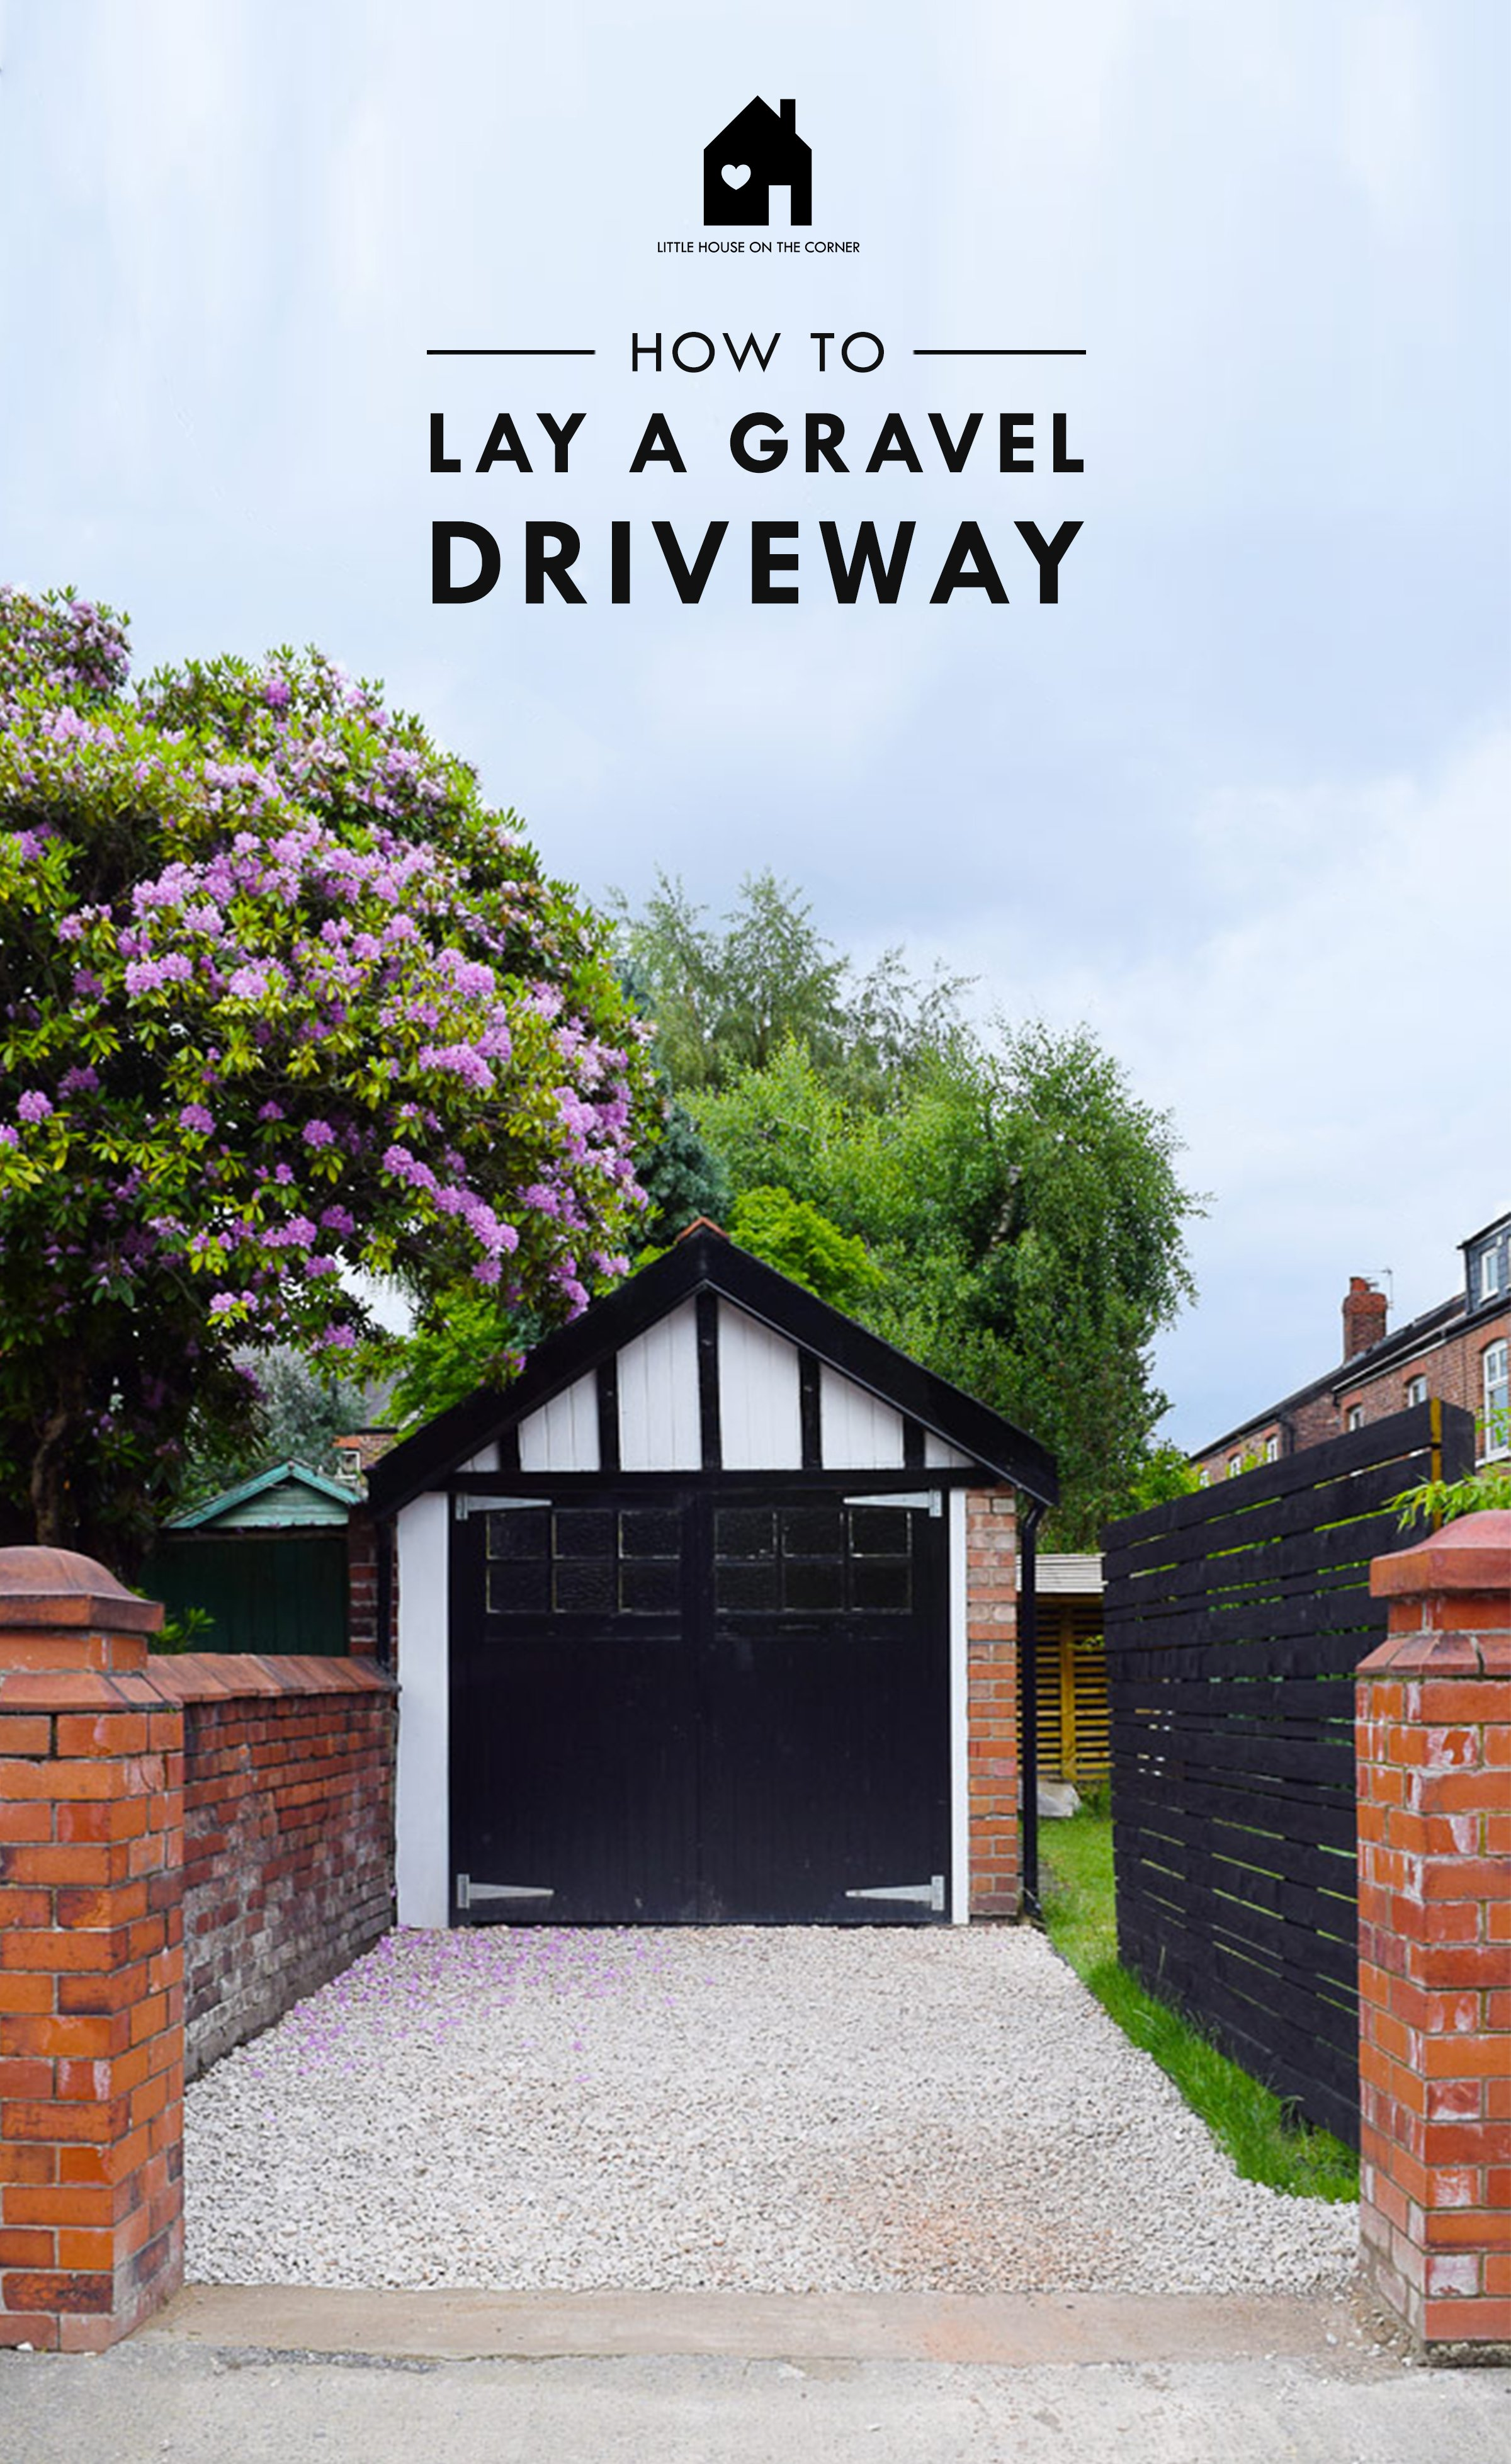 How To Lay A Gravel Driveway | Ultimate DIY Guide | Step by Step Instructions with cost breakdown | Little House On The Corner